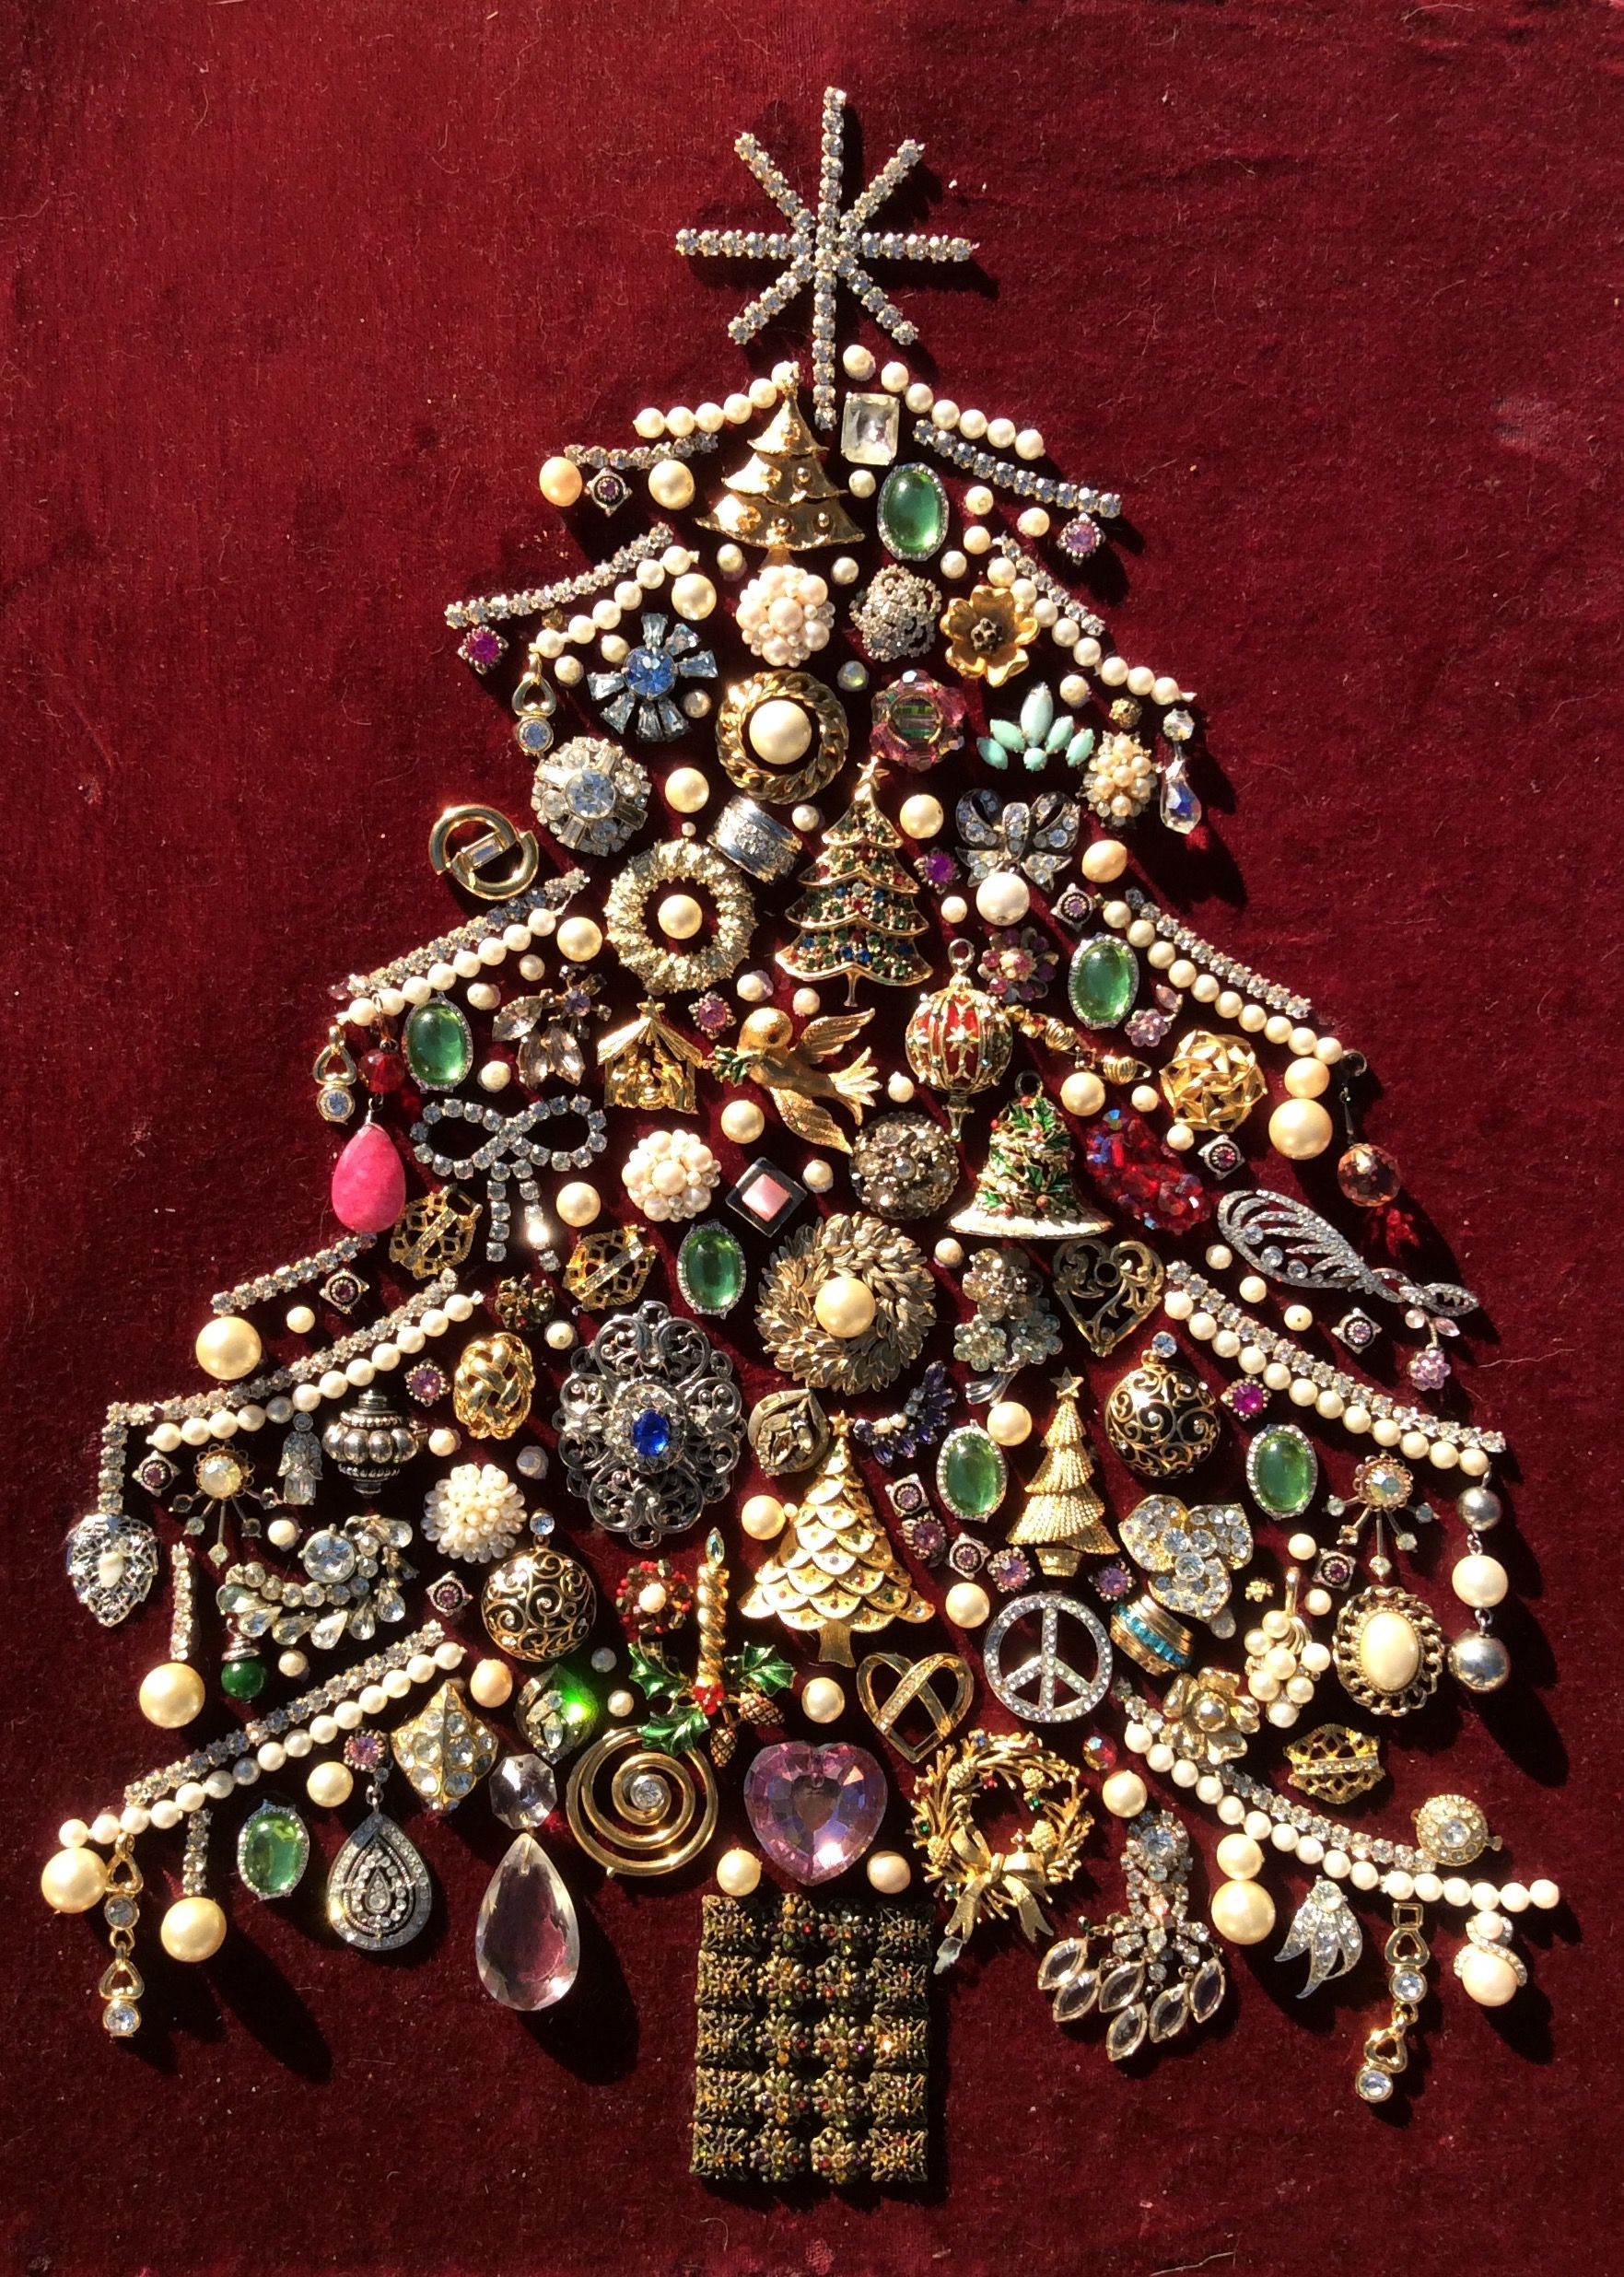 Large 21x 17 Christmas Tree Made From Old Costume Jewelry